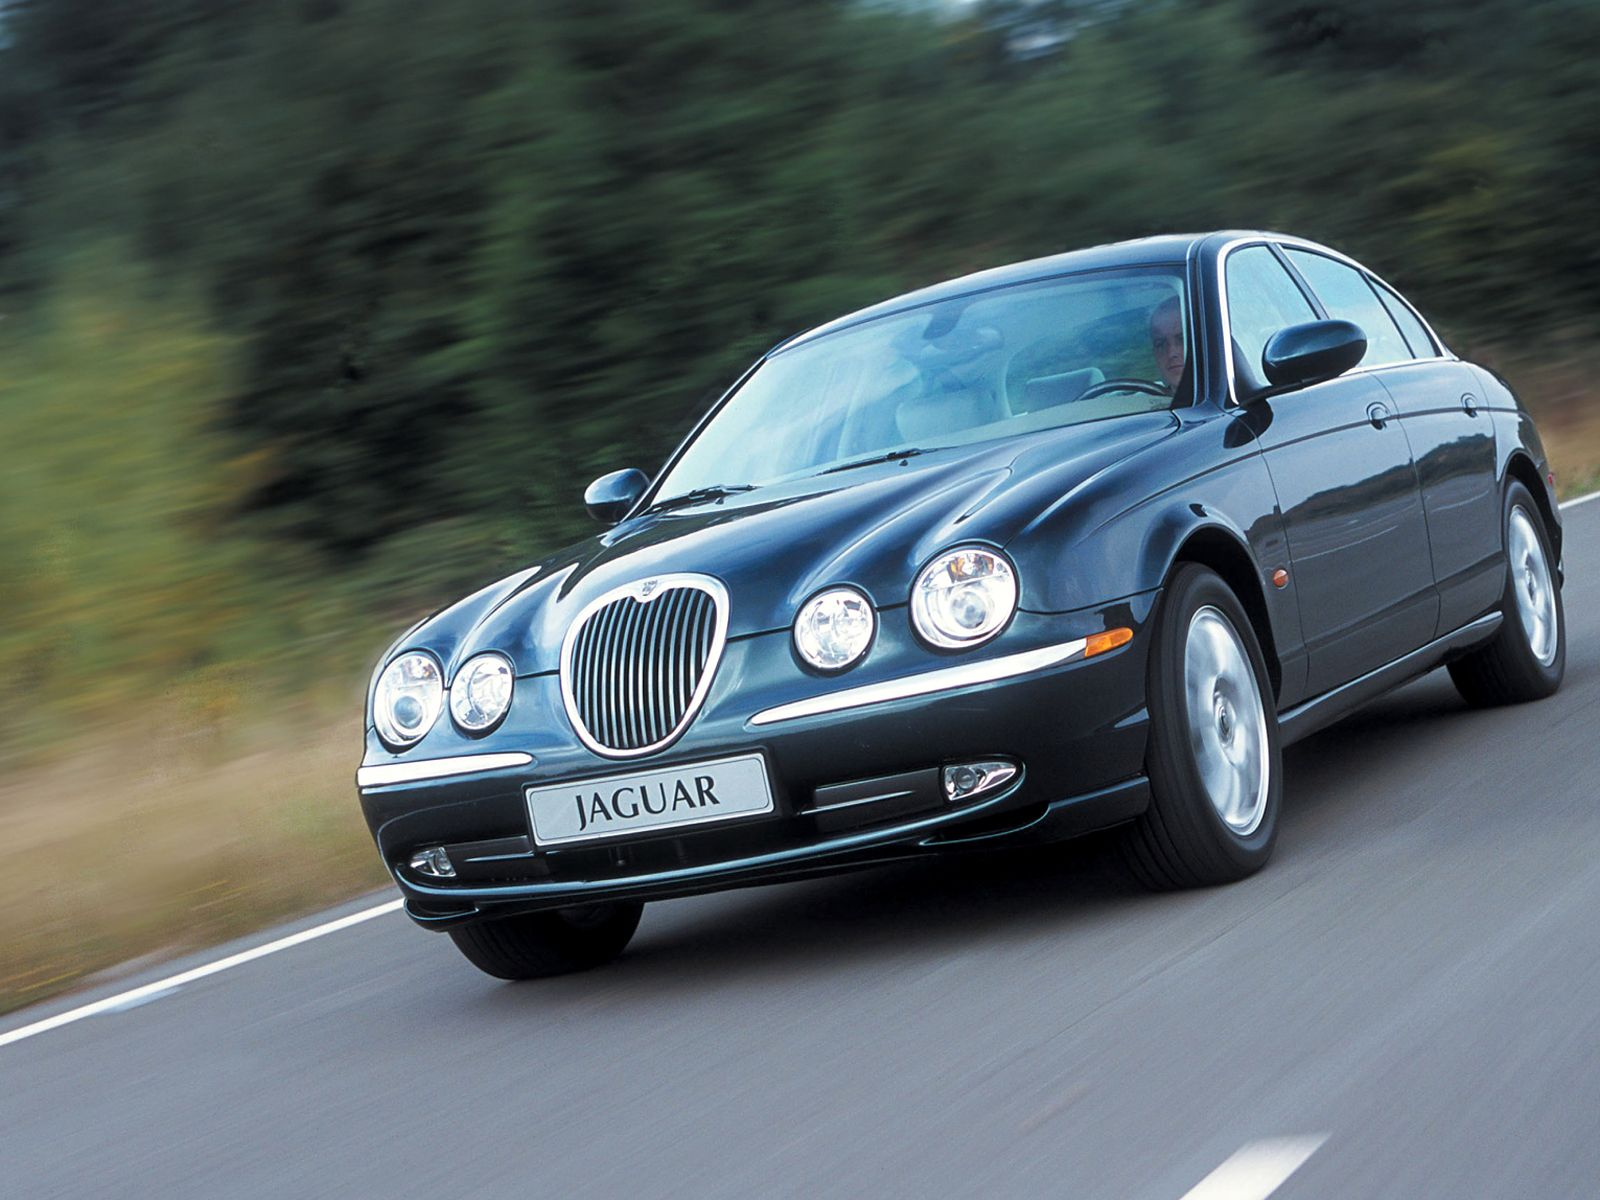 Jaguar S-Type - 1600 x 1200, 04 из 17